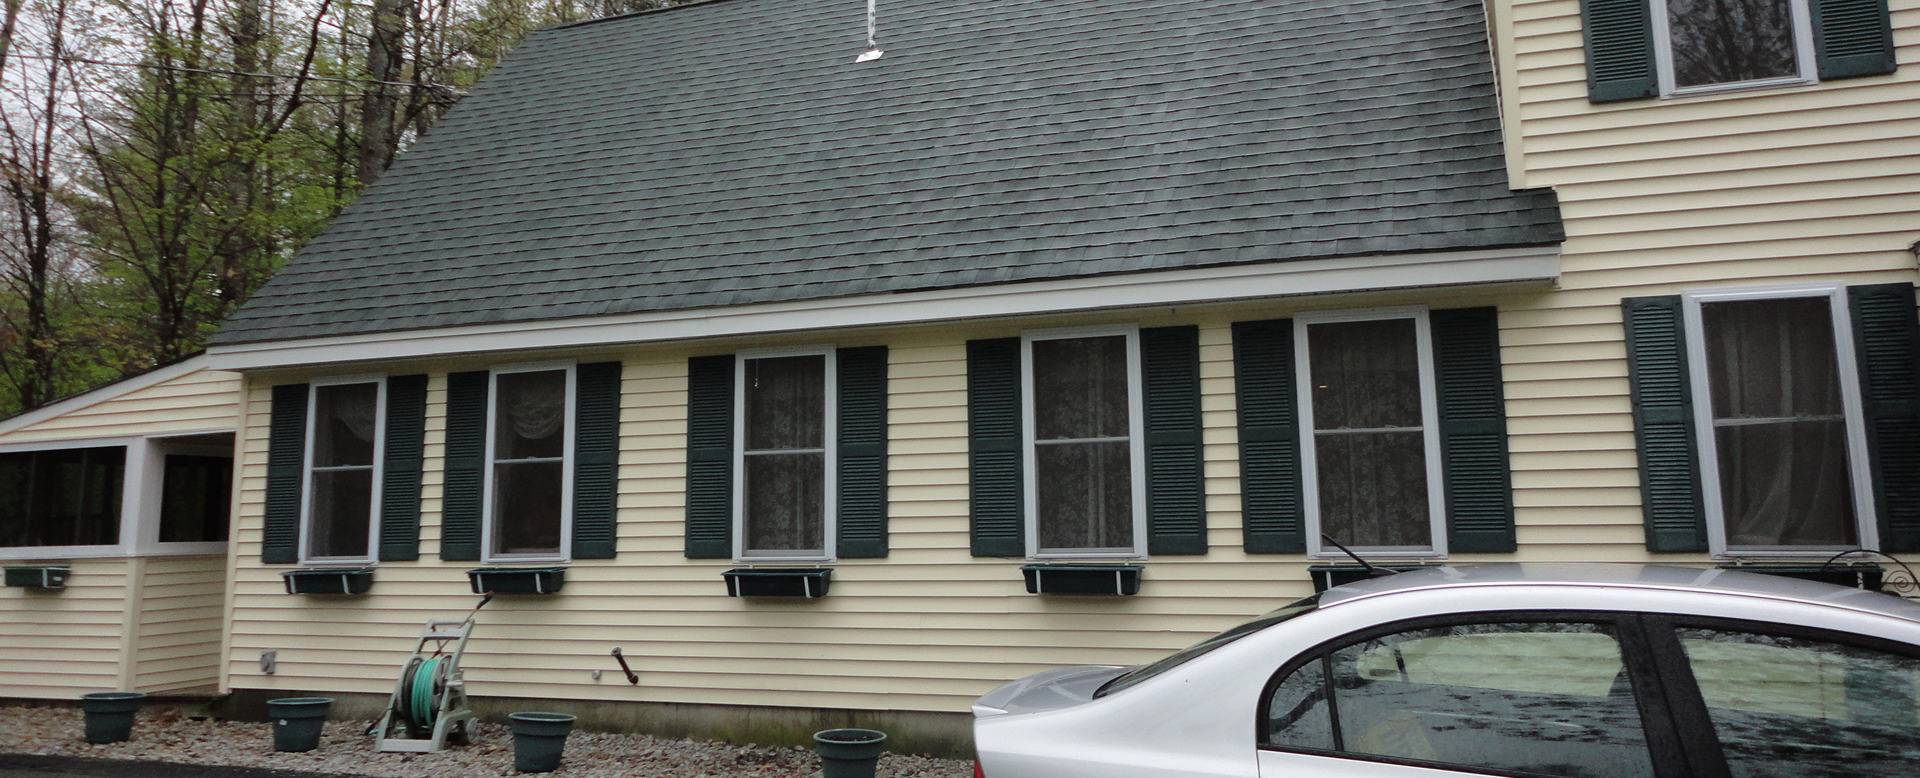 Nh lakes region homes for sale roche realty autos post for Home builders in nh